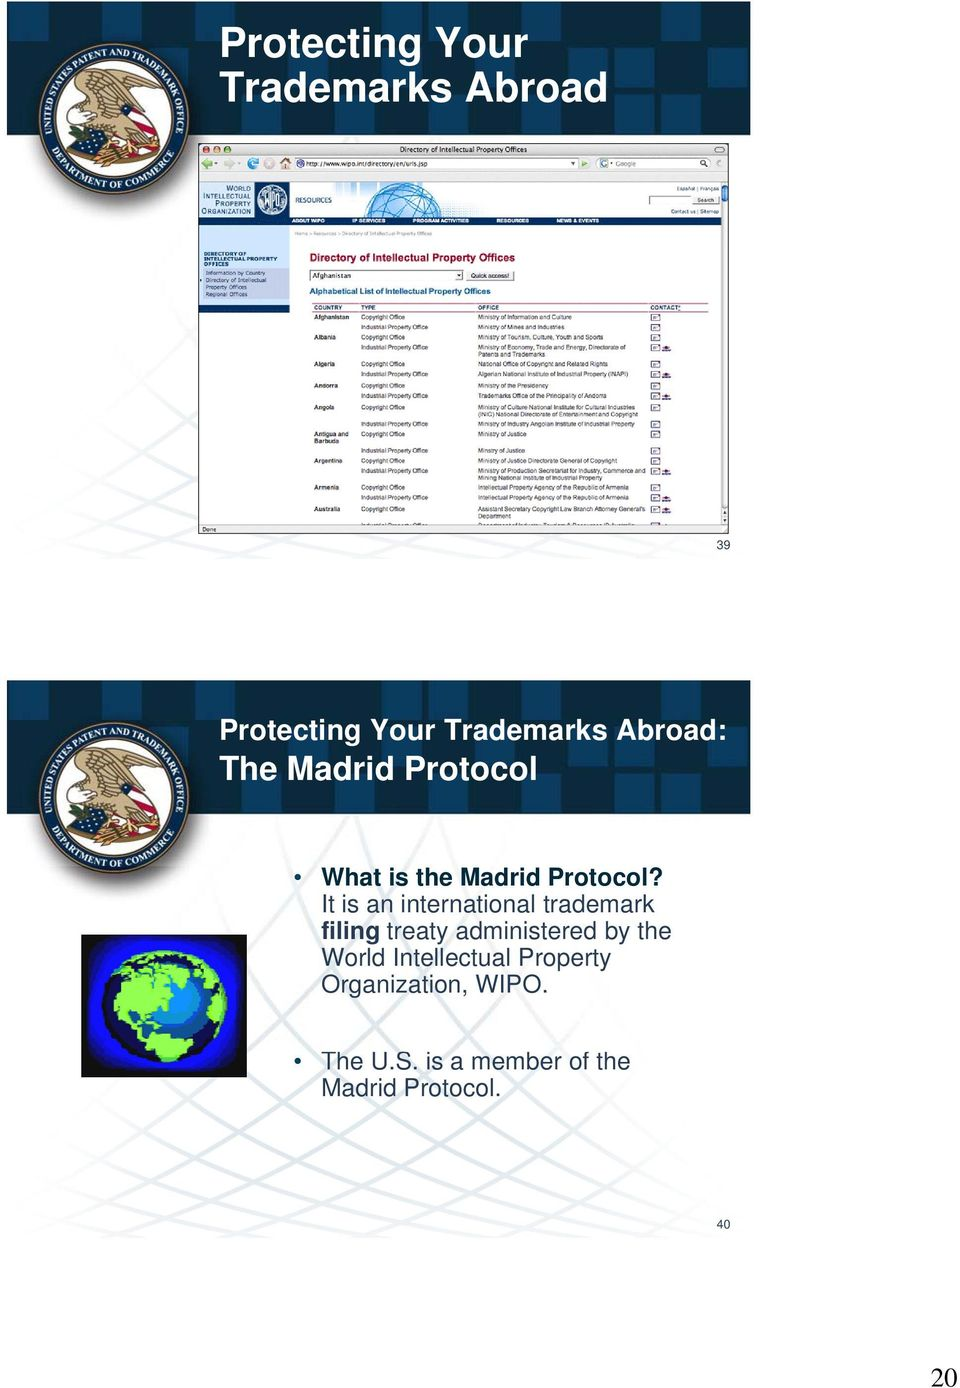 It is an international trademark filing treaty administered by the